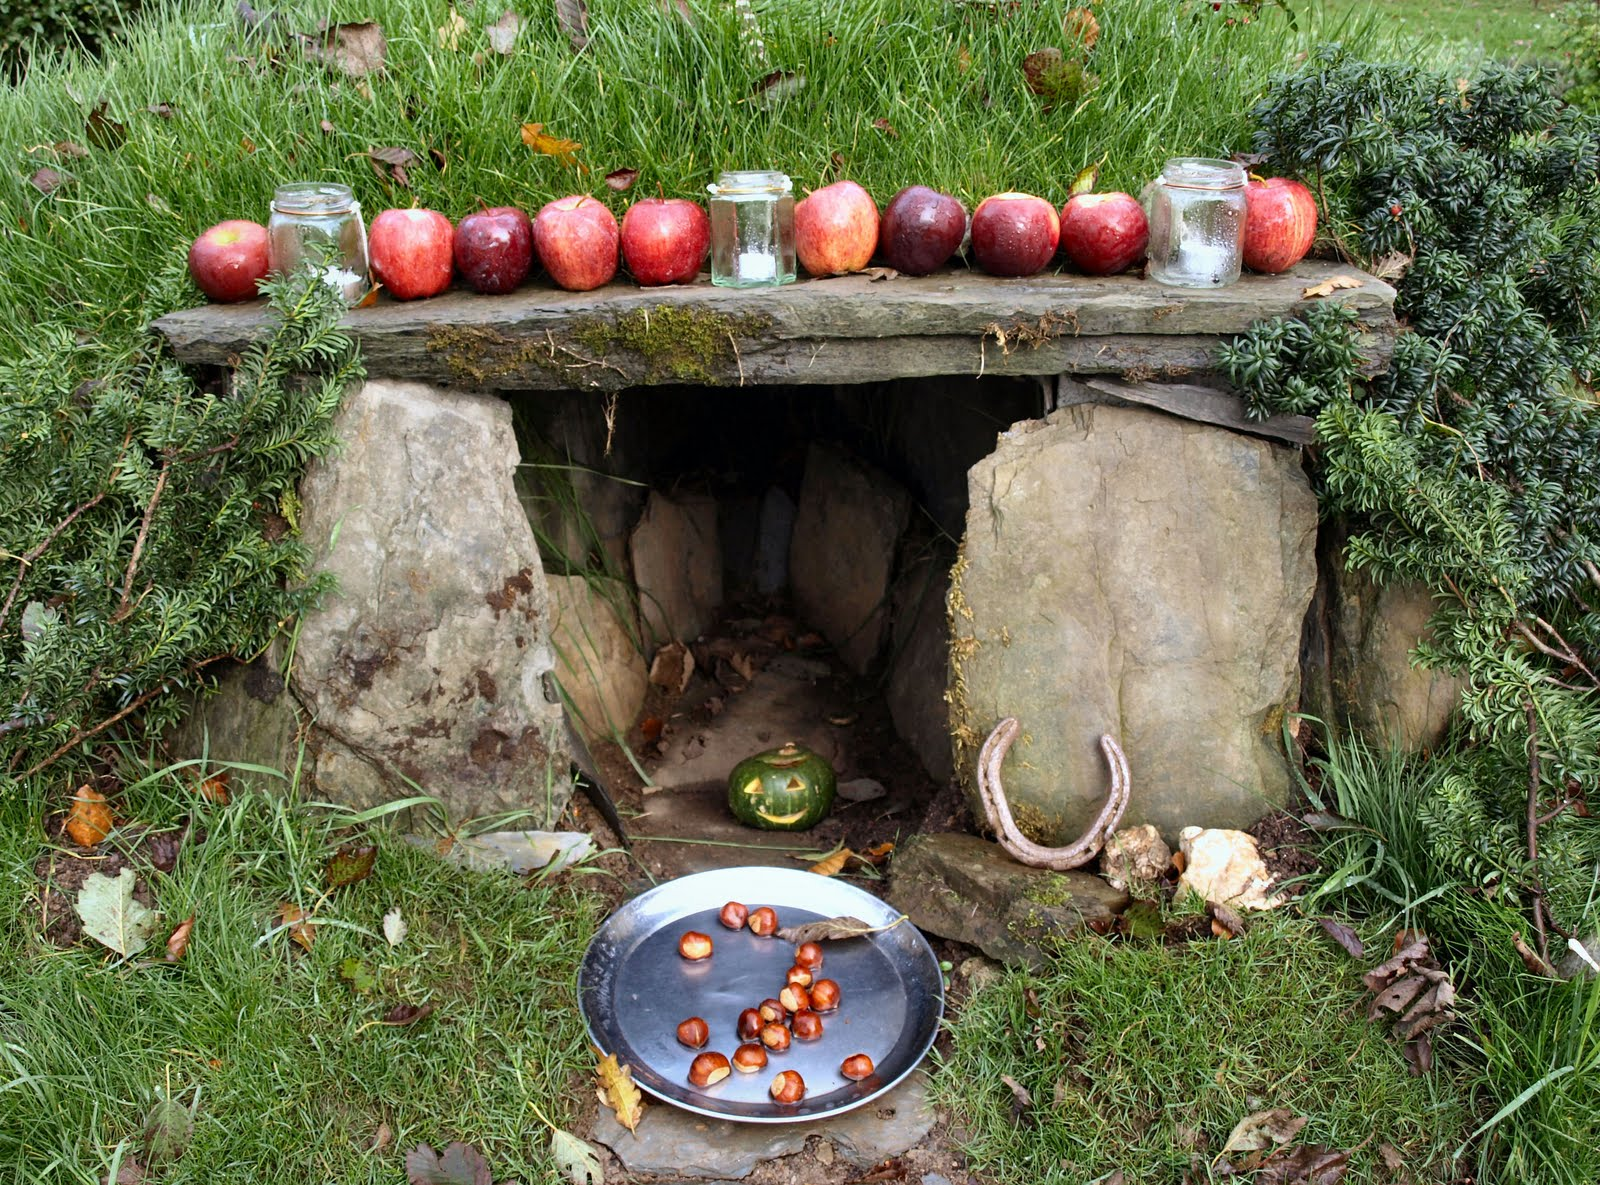 1000+ images about Druidry on Pinterest.